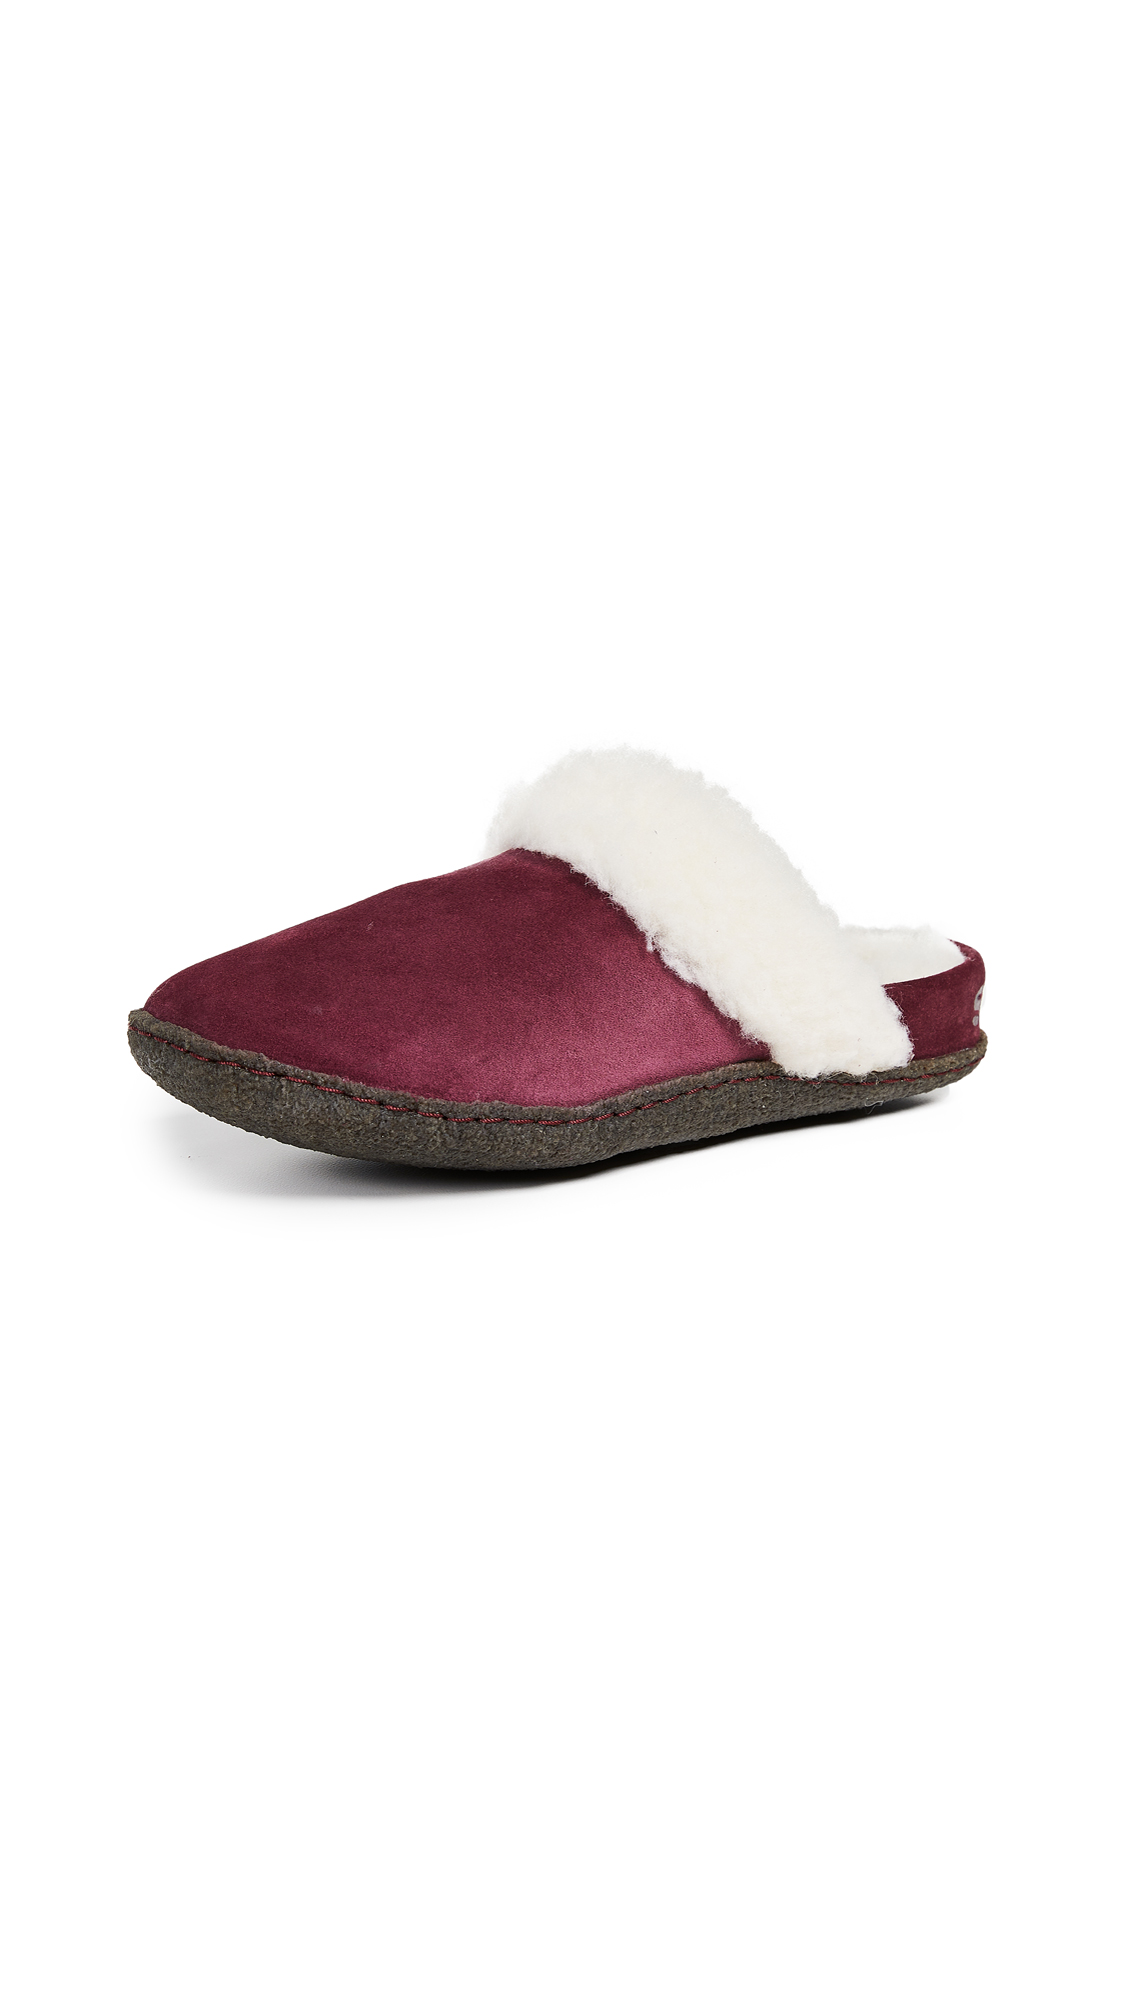 Sorel Nakiska Slide II Slippers - Rich Wine